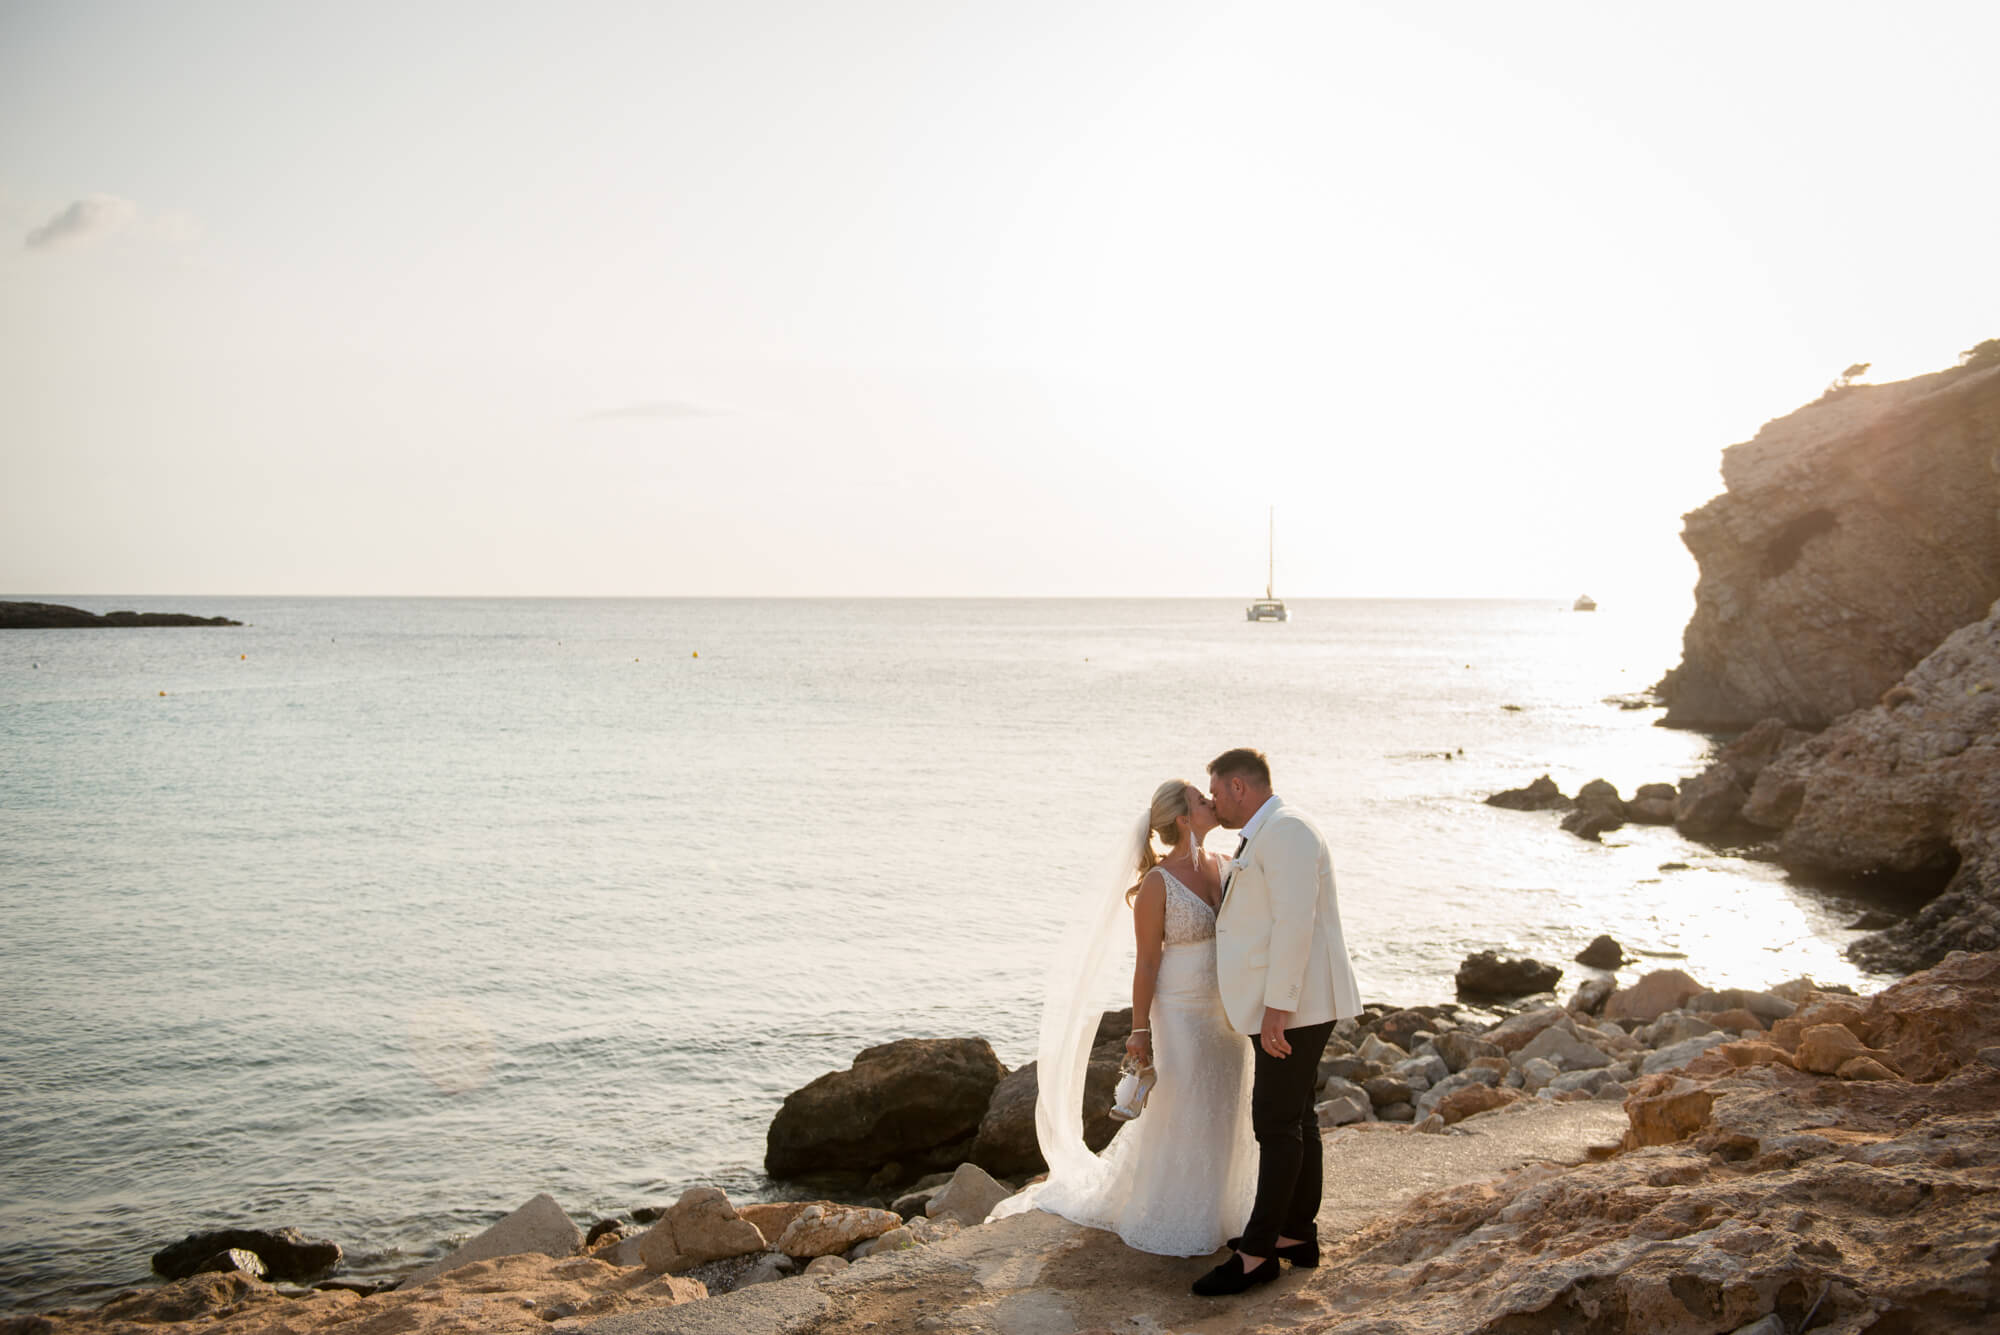 sunset bride groom portrait kiss beach side horizon veil blowing wind